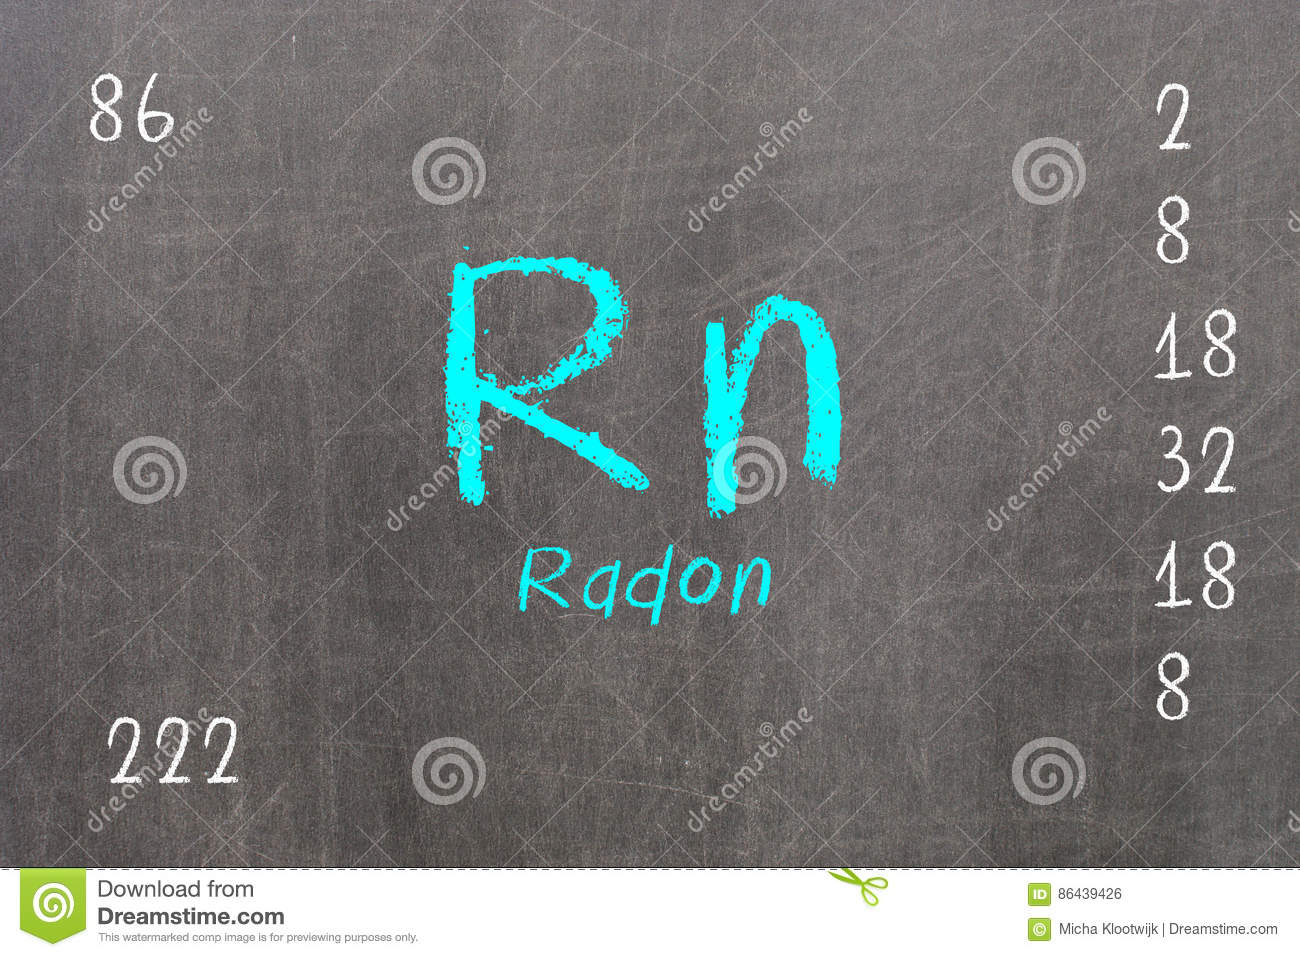 Periodic table radon gallery periodic table images isolated blackboard with periodic table radon stock illustration isolated blackboard with periodic table radon gamestrikefo gallery gamestrikefo Image collections